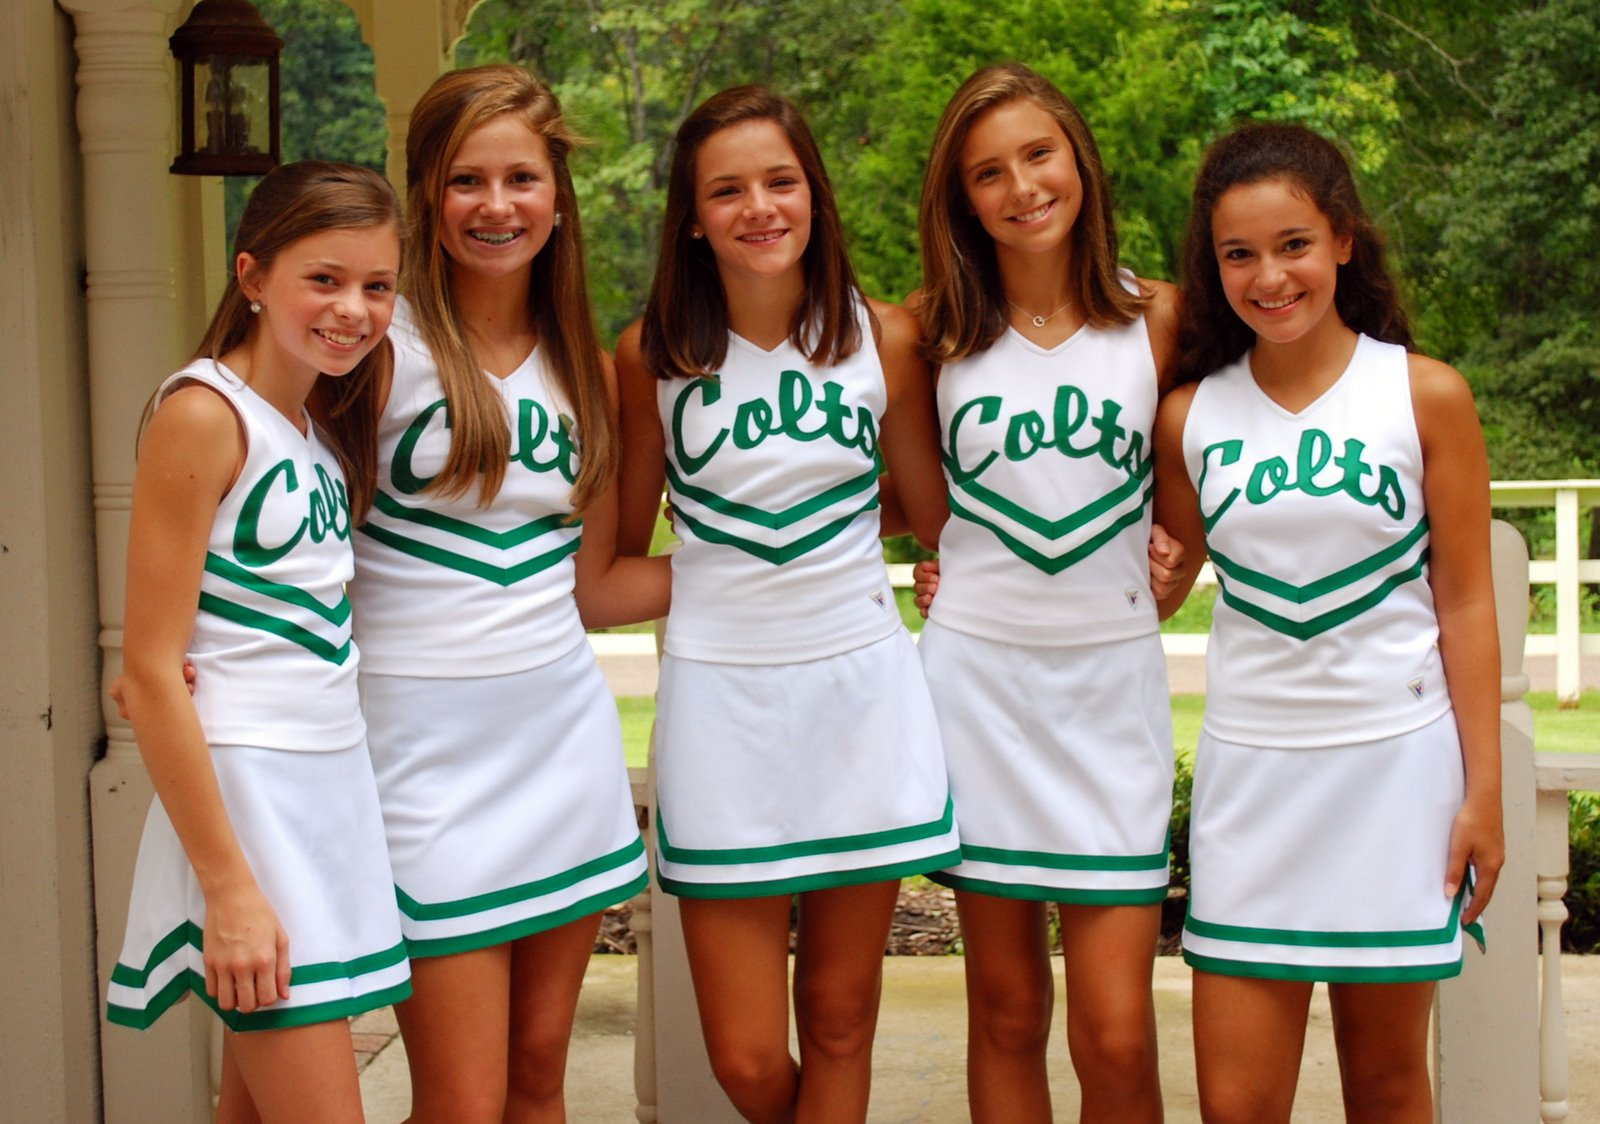 kaylea byrd abbey rankin and mary evan ivy 8th grade cheerleaders